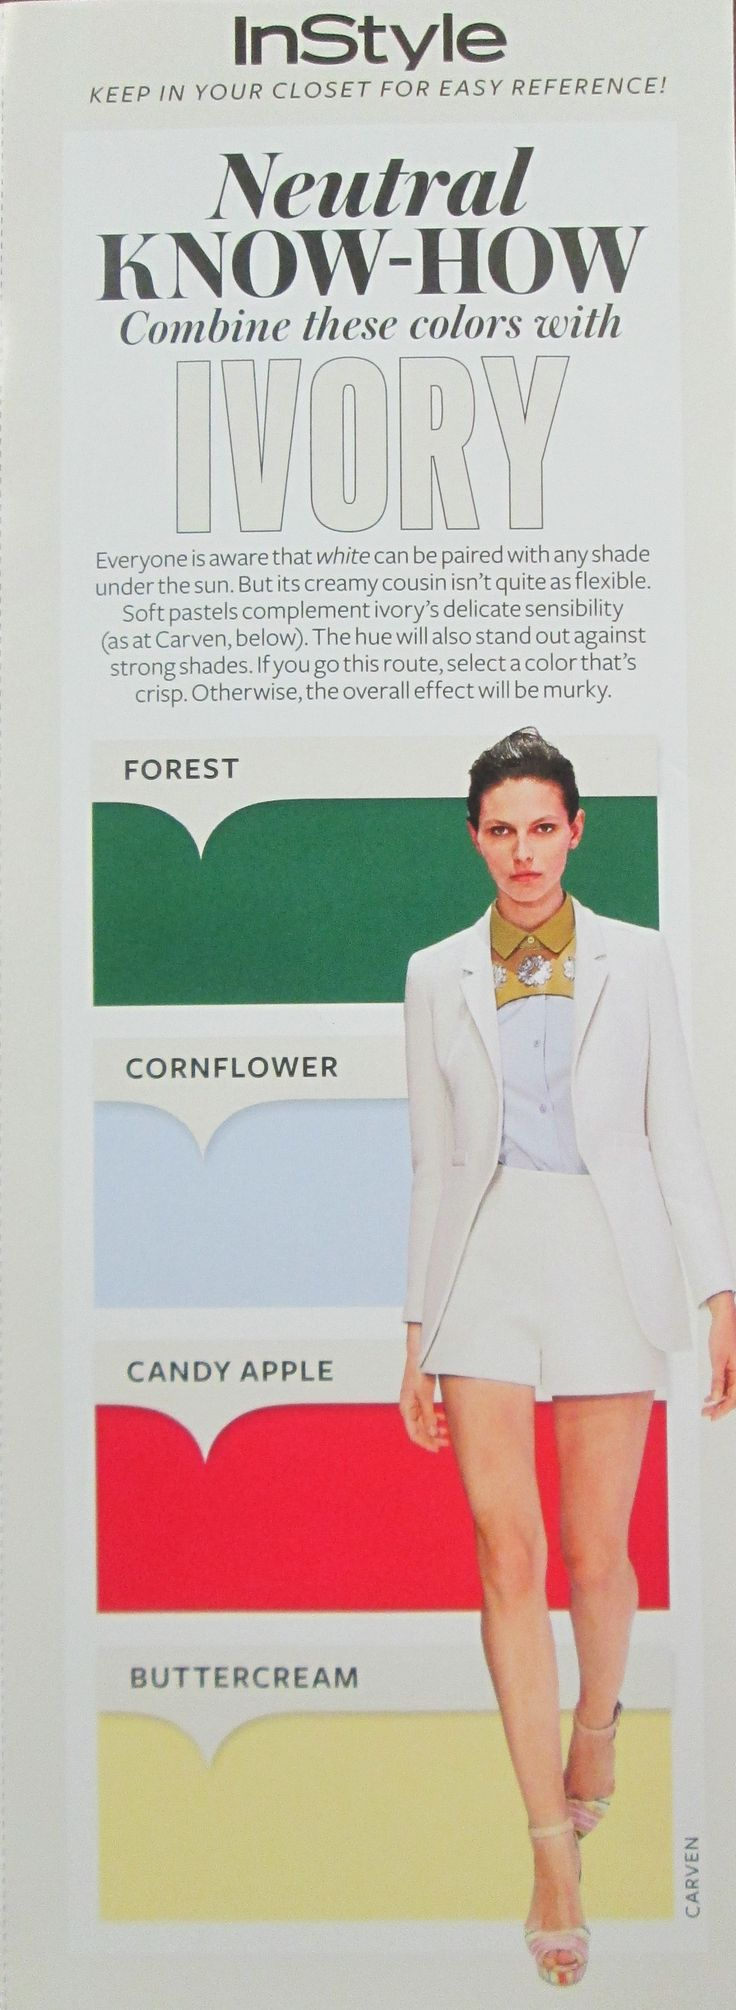 Instyle Neutral Know-How Ivory